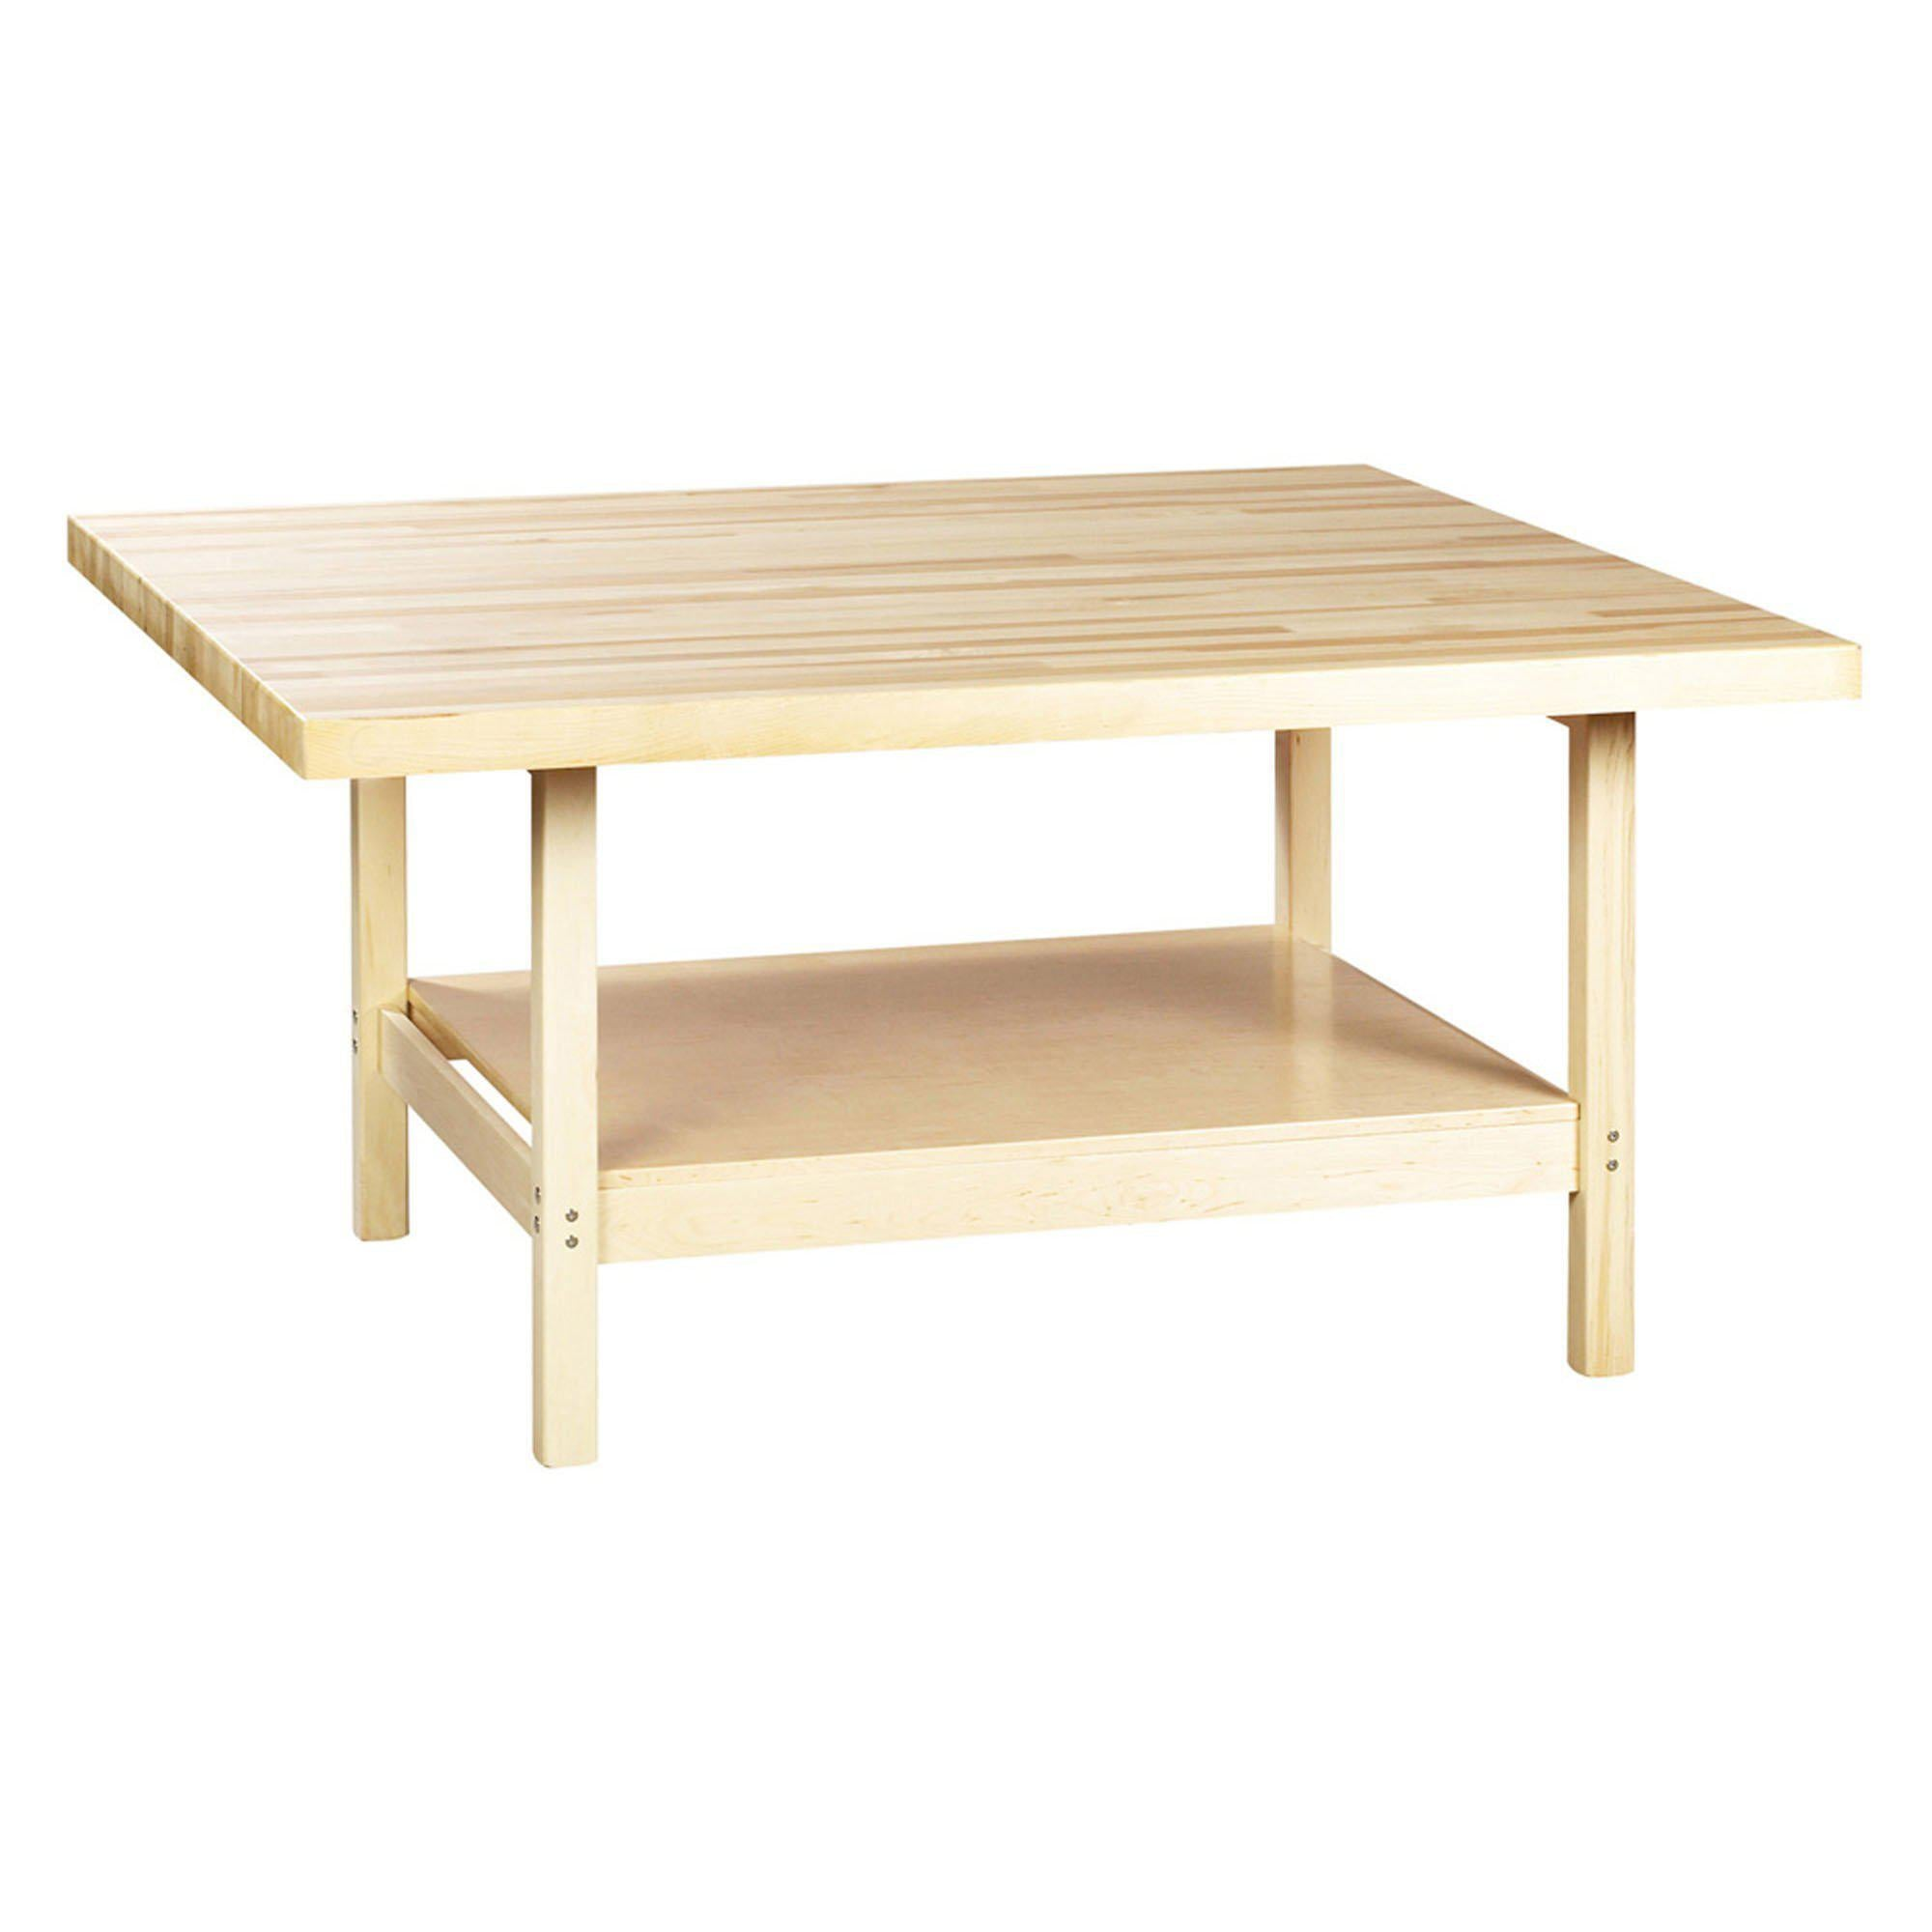 Open-Style Four-Station Wood Workbench-0-